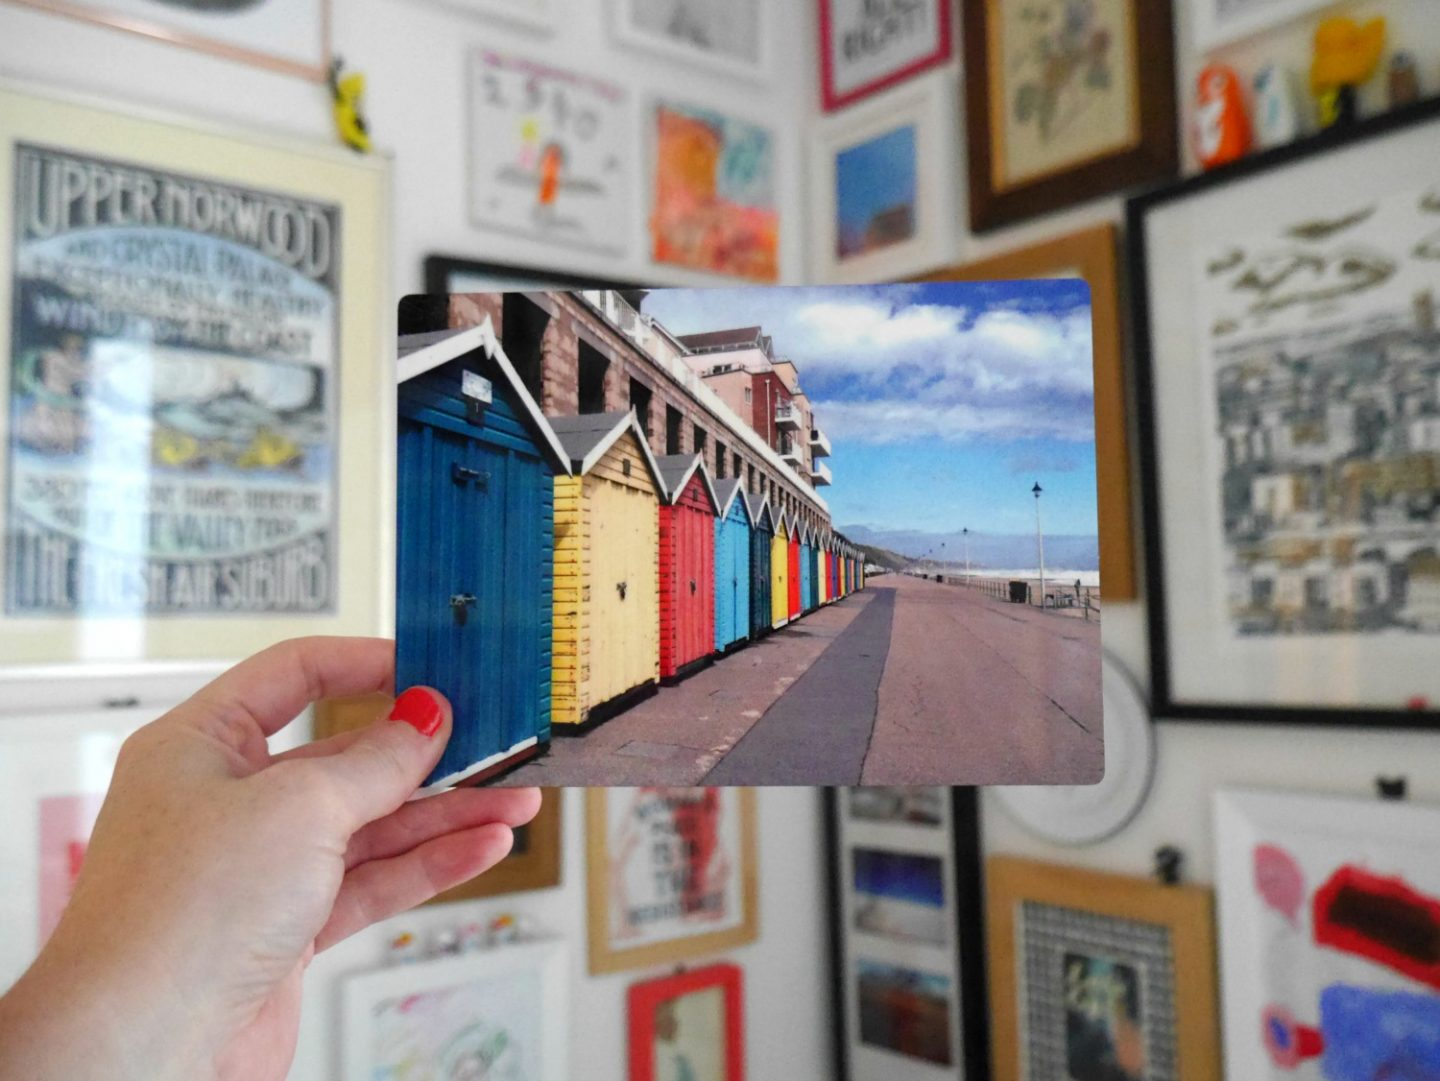 Snapfish review - metal photos of bournemouth beach huts